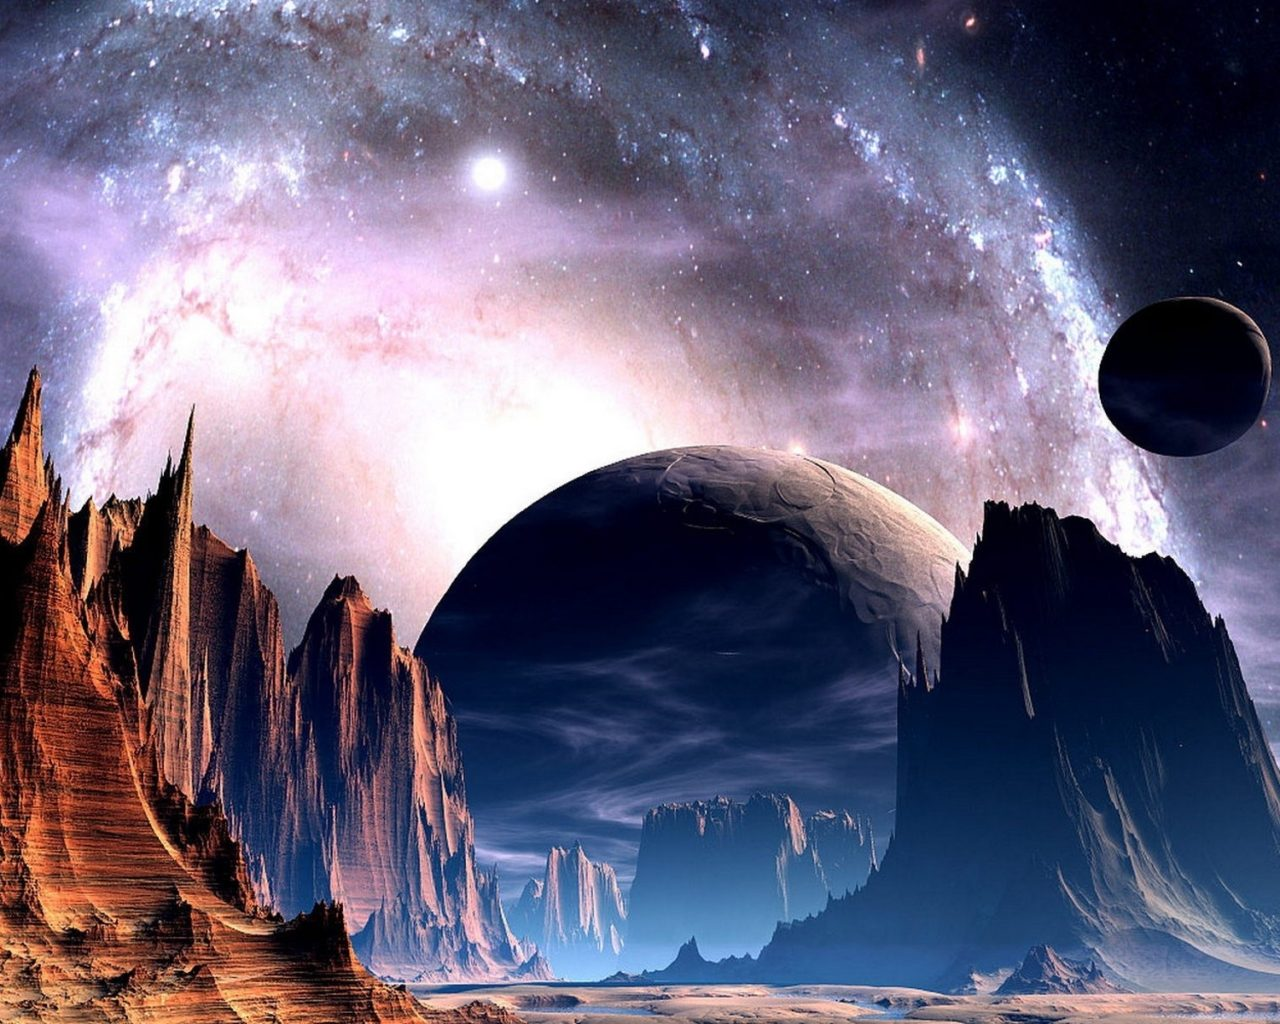 Alien Desktop Wallpaper Hd Sci Fi Science Fiction Planets Alien Sky Stars Nebula